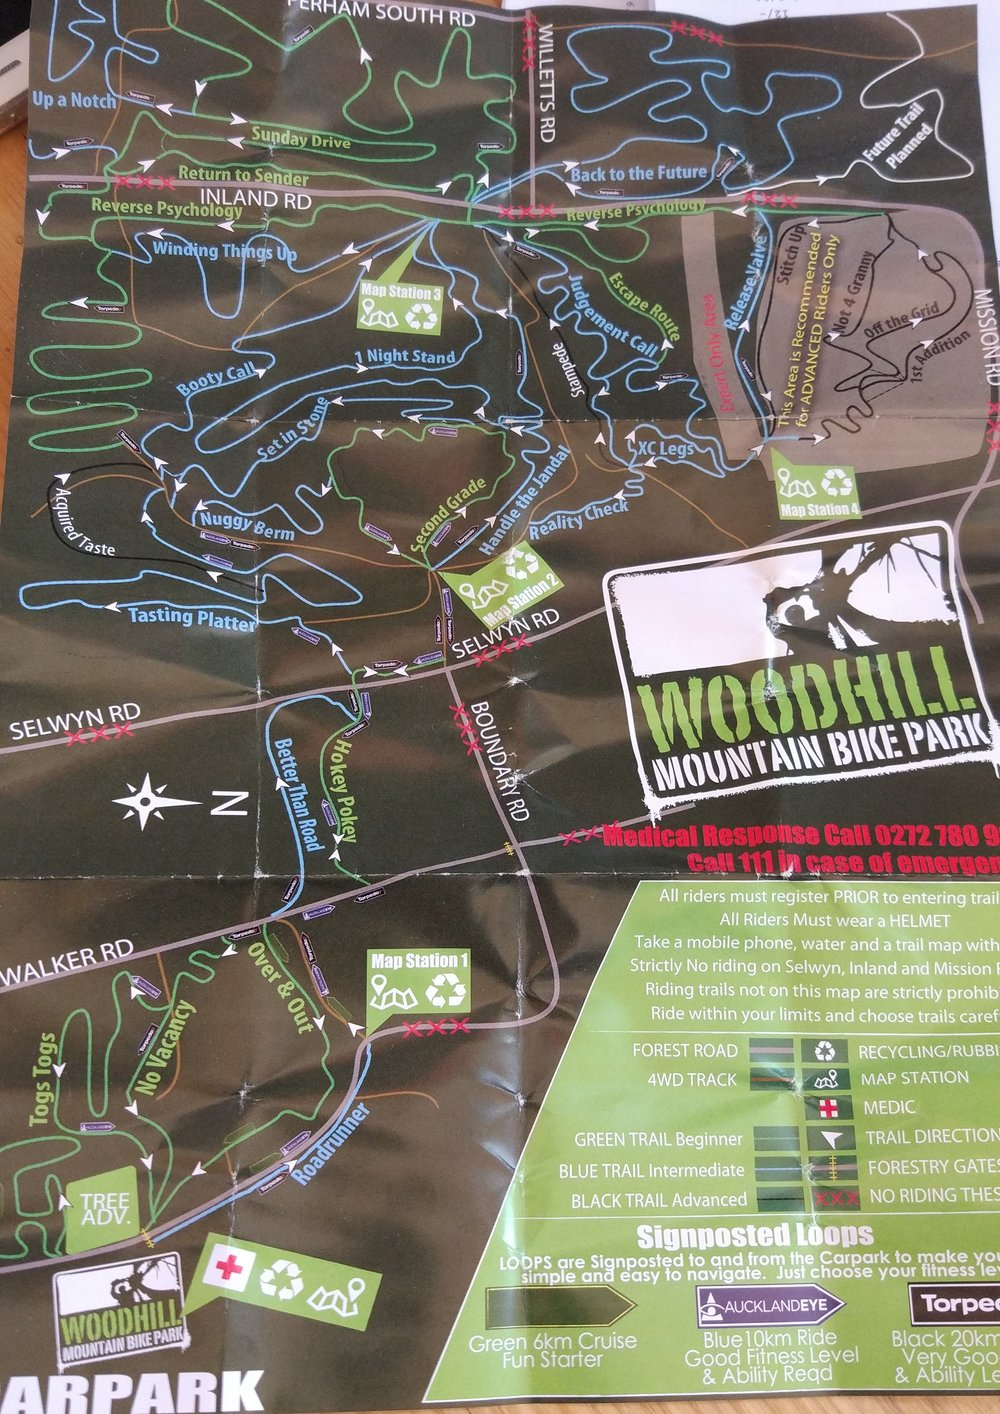 20171021_new_zealand_woodhill_trail_map.jpg